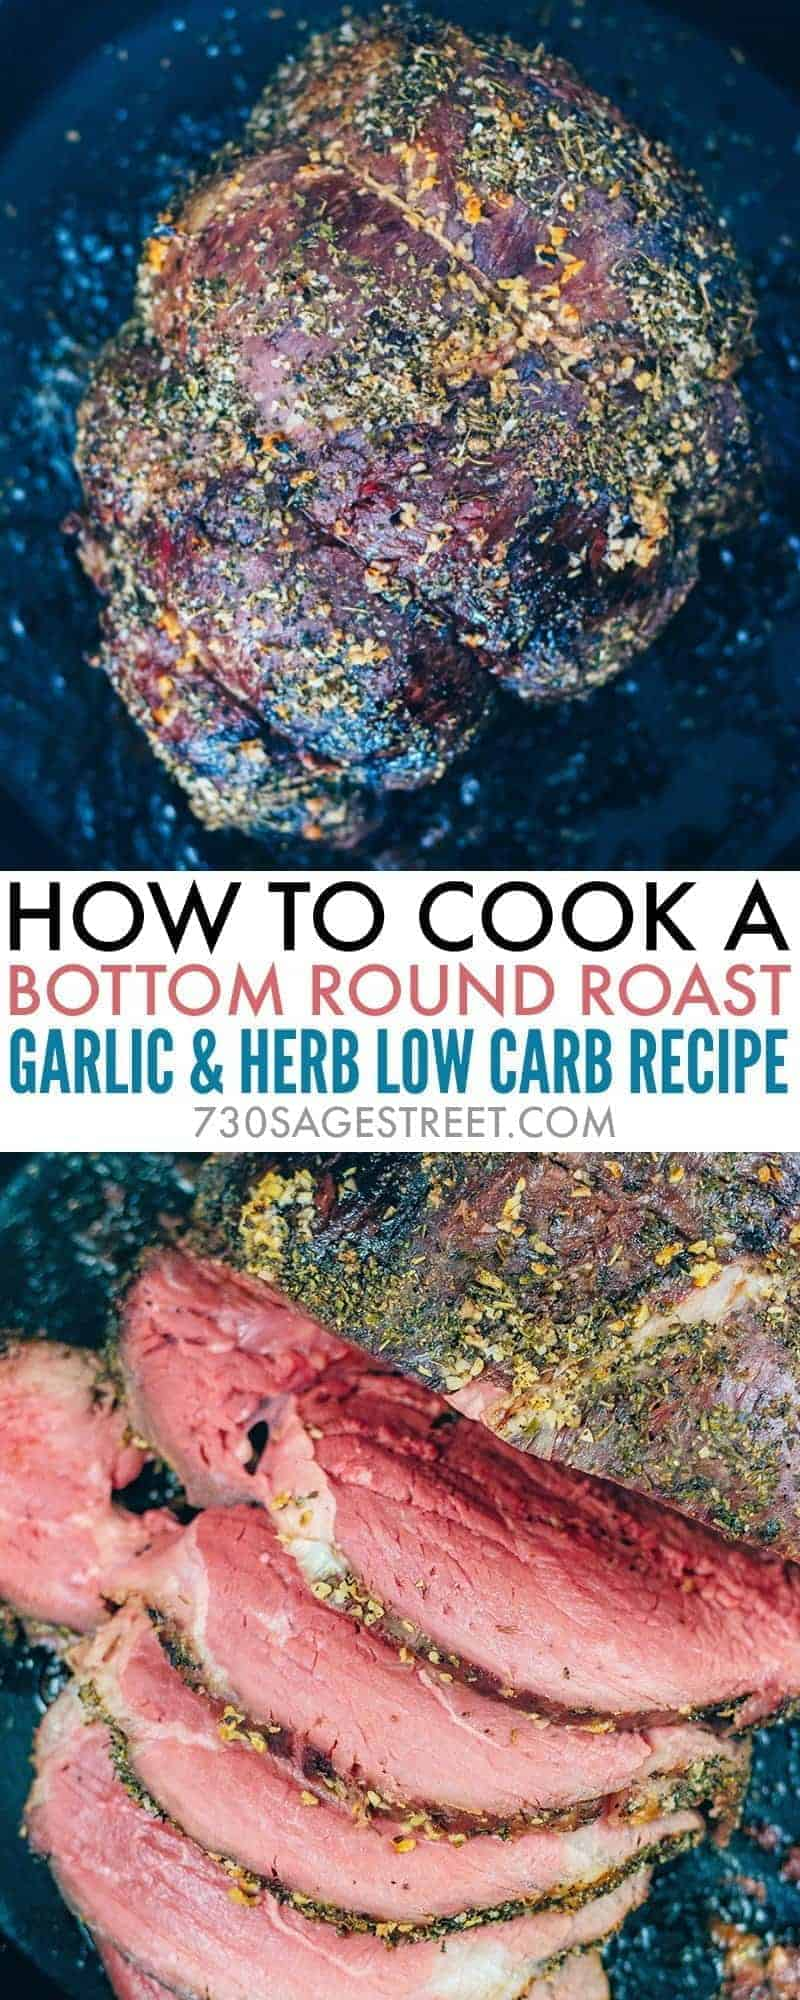 Bottom round roast is a cut of meat that is affordable but has a tendency to be pretty tough. Learn how you cook a perfect, tender, medium-rare bottom round roast that can be sliced nicely. #lowcarb #keto #beef #dinner